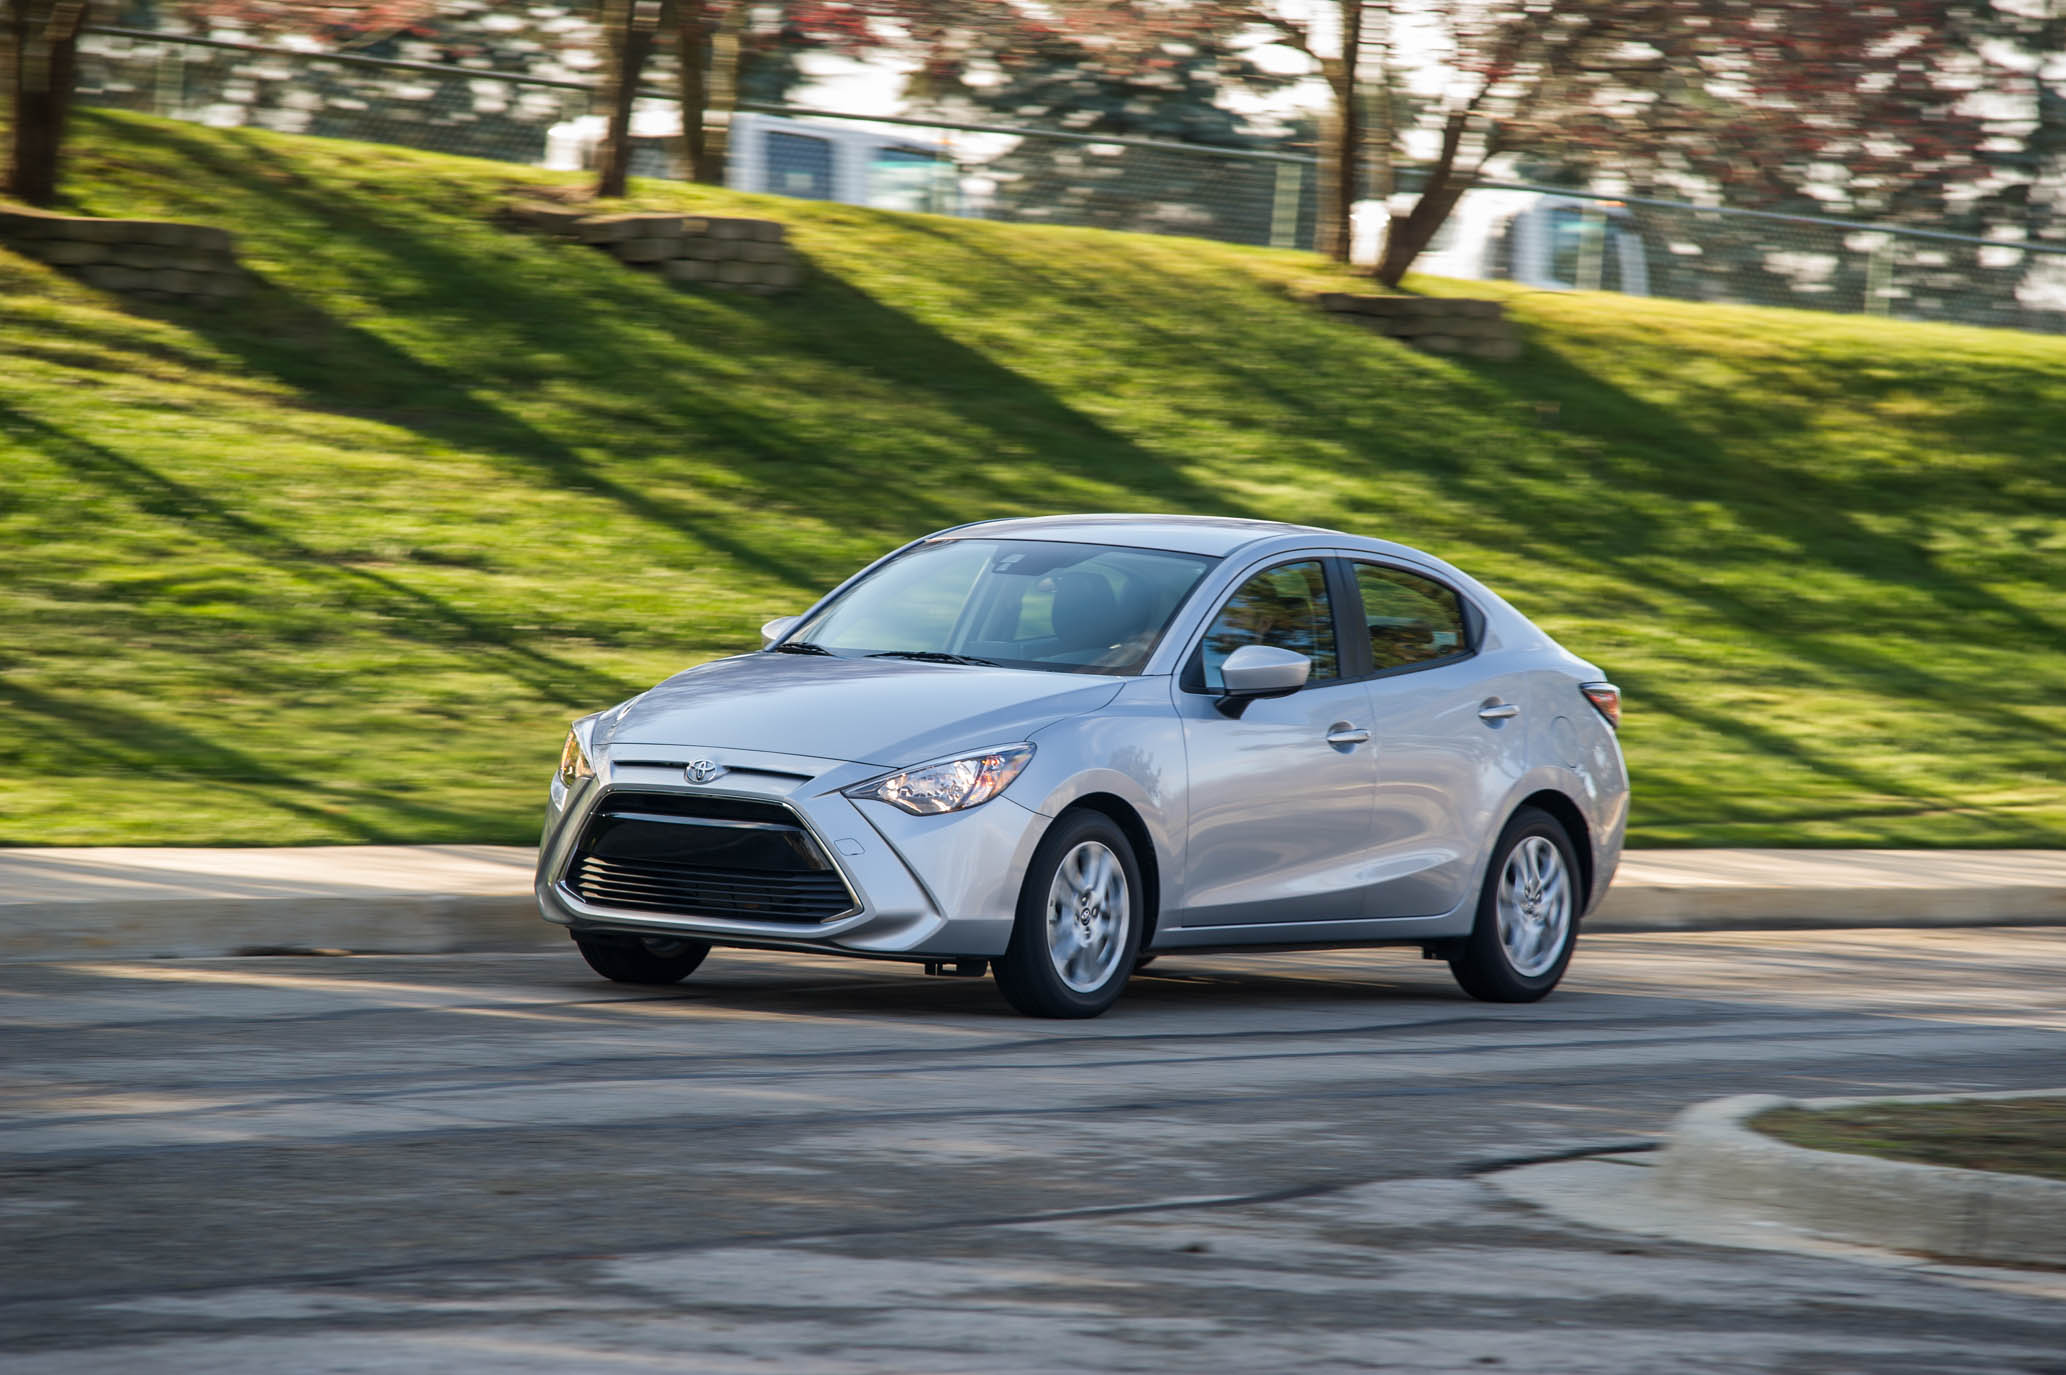 2017 Toyota Yaris IA (View 33 of 33)